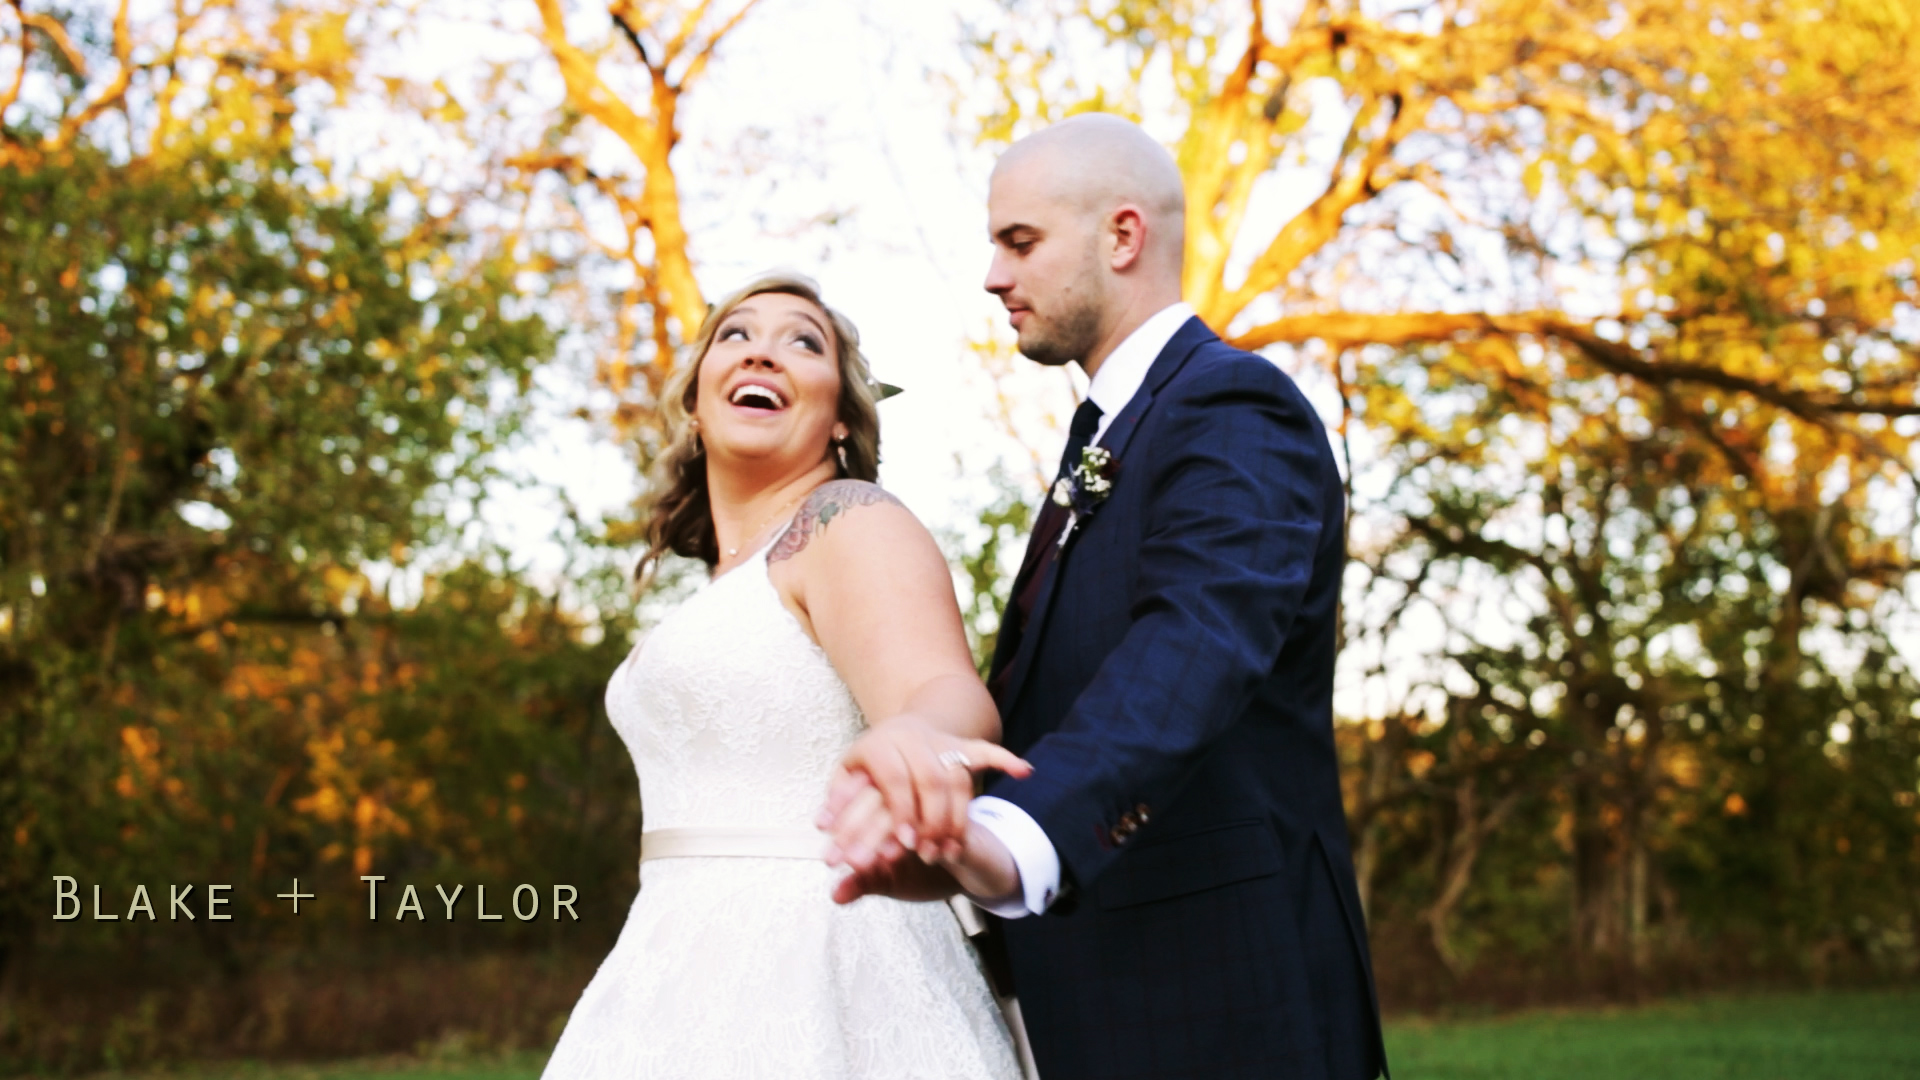 Blake + Taylor | Hopkinsville, Kentucky | The Silo